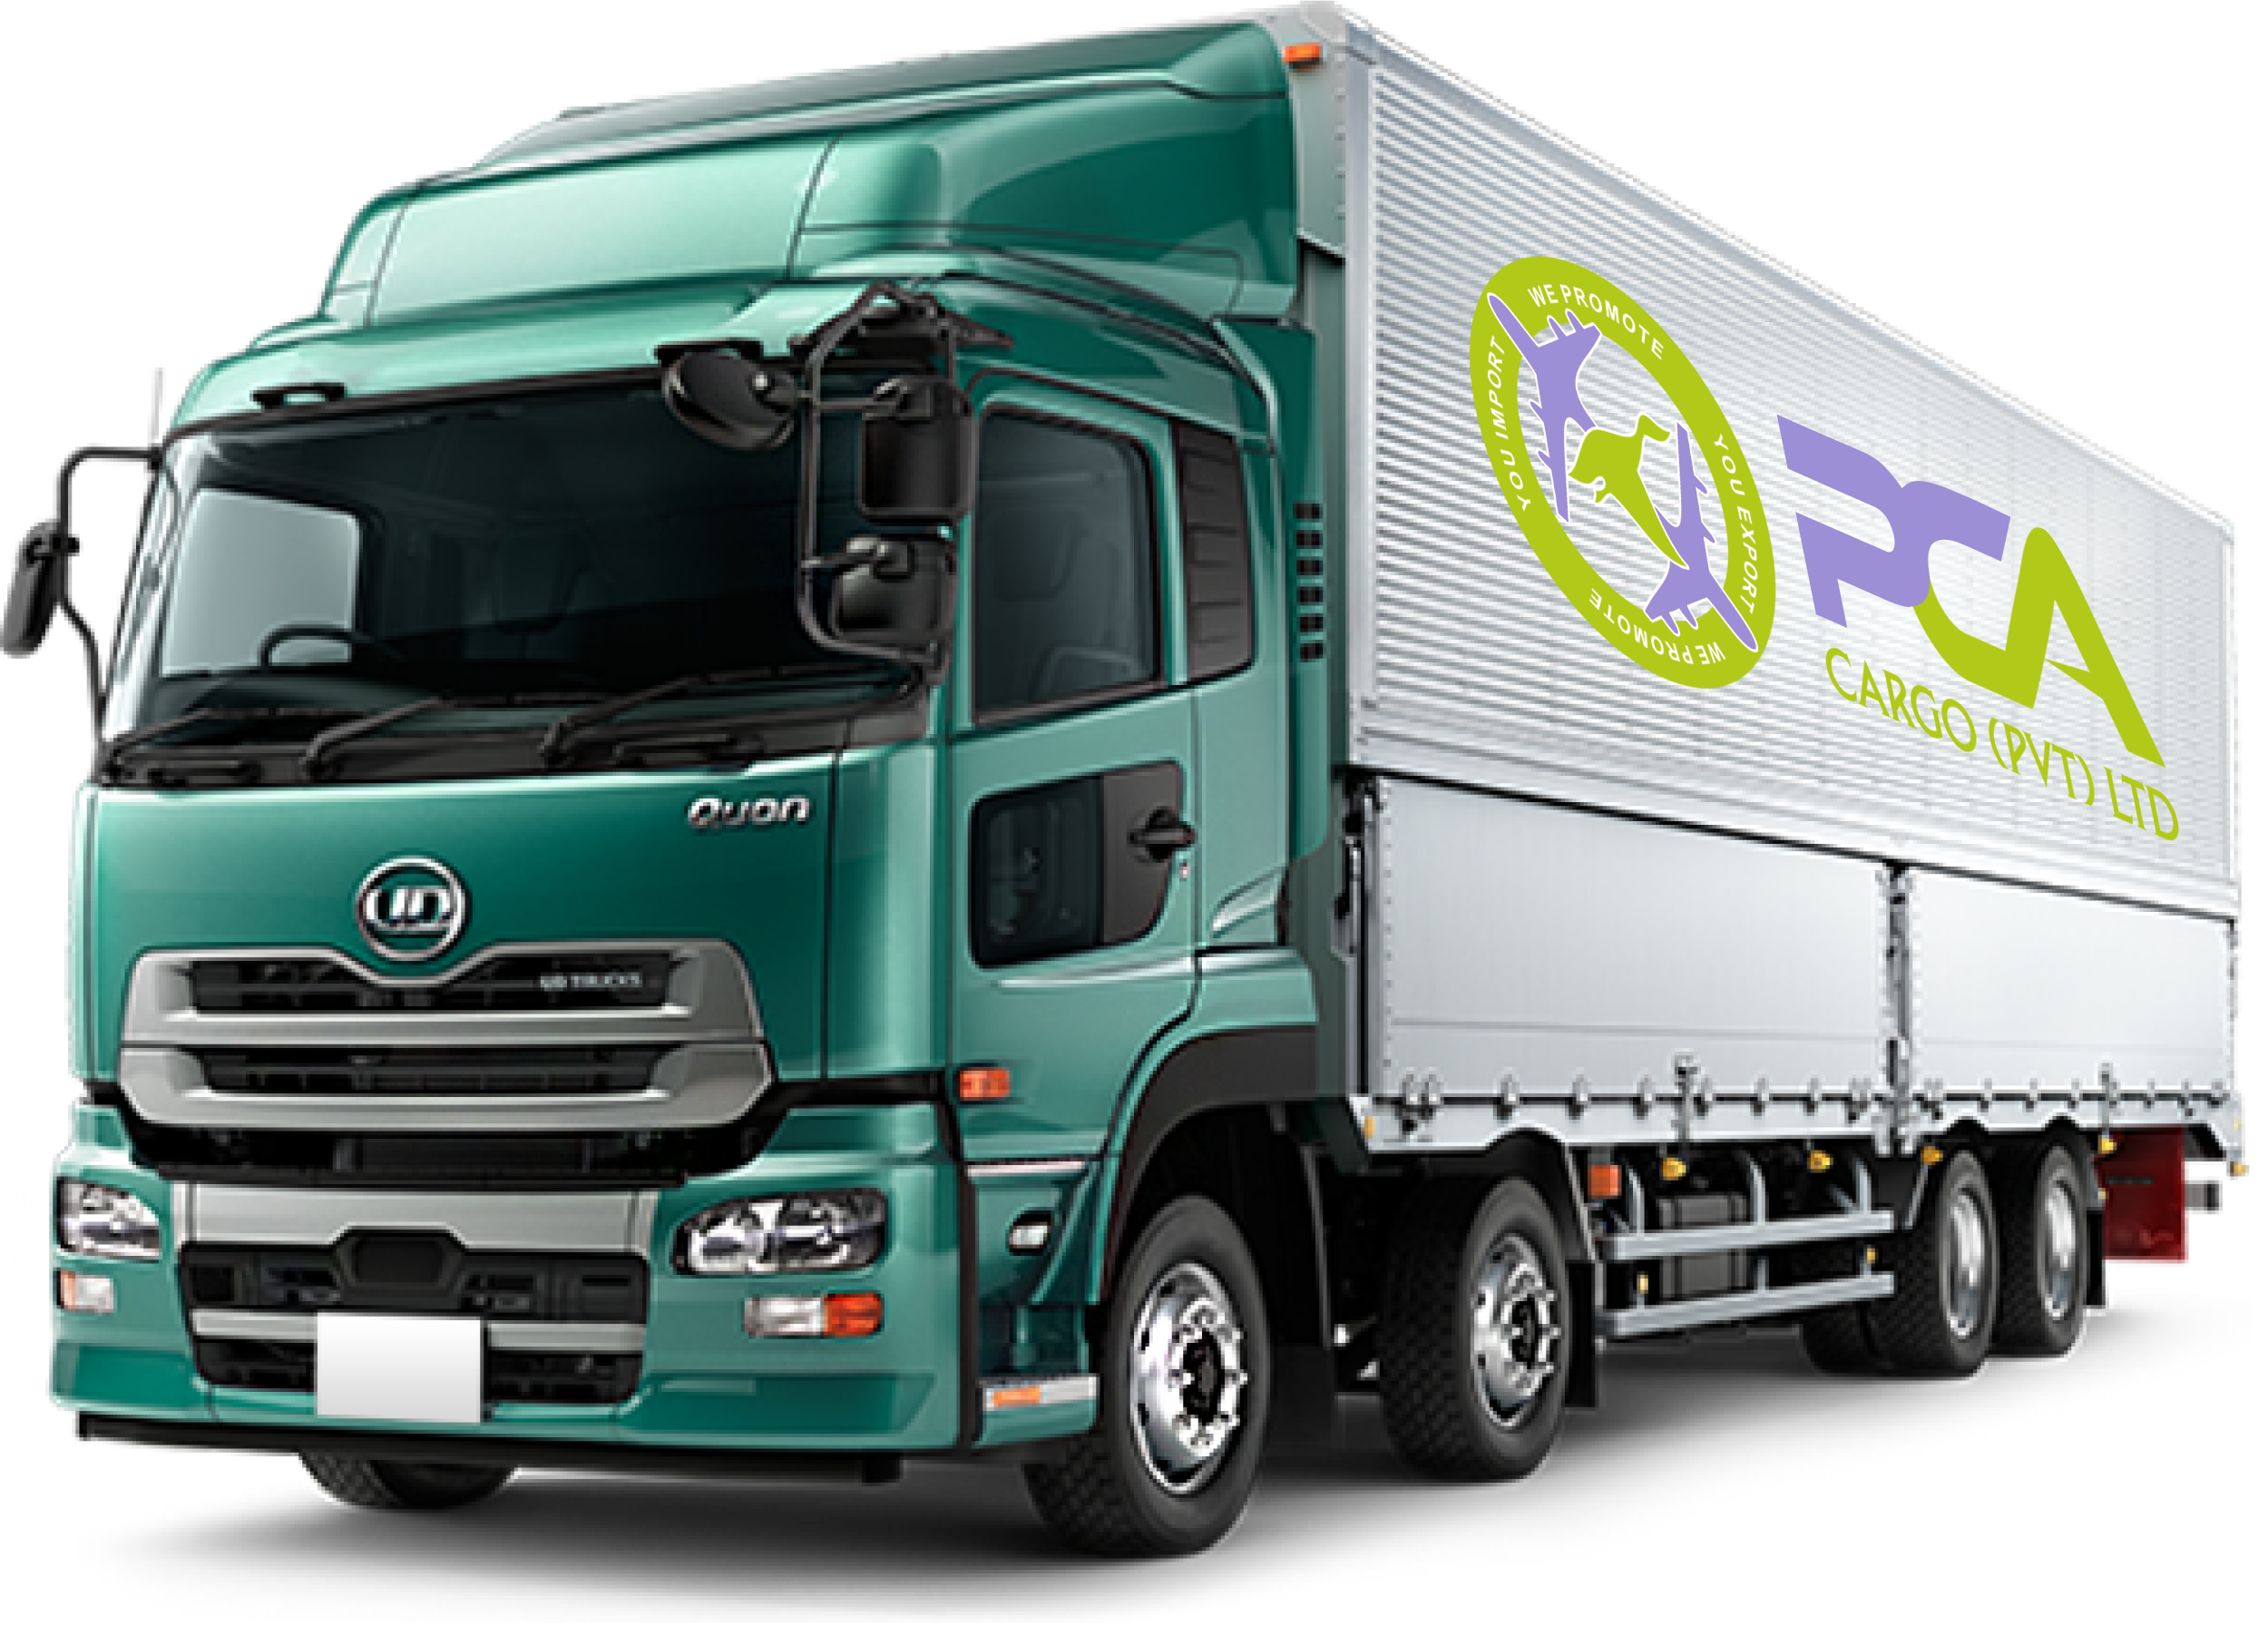 http://www.pcacargo.com/wp-content/uploads/2015/10/truck_green-1.png